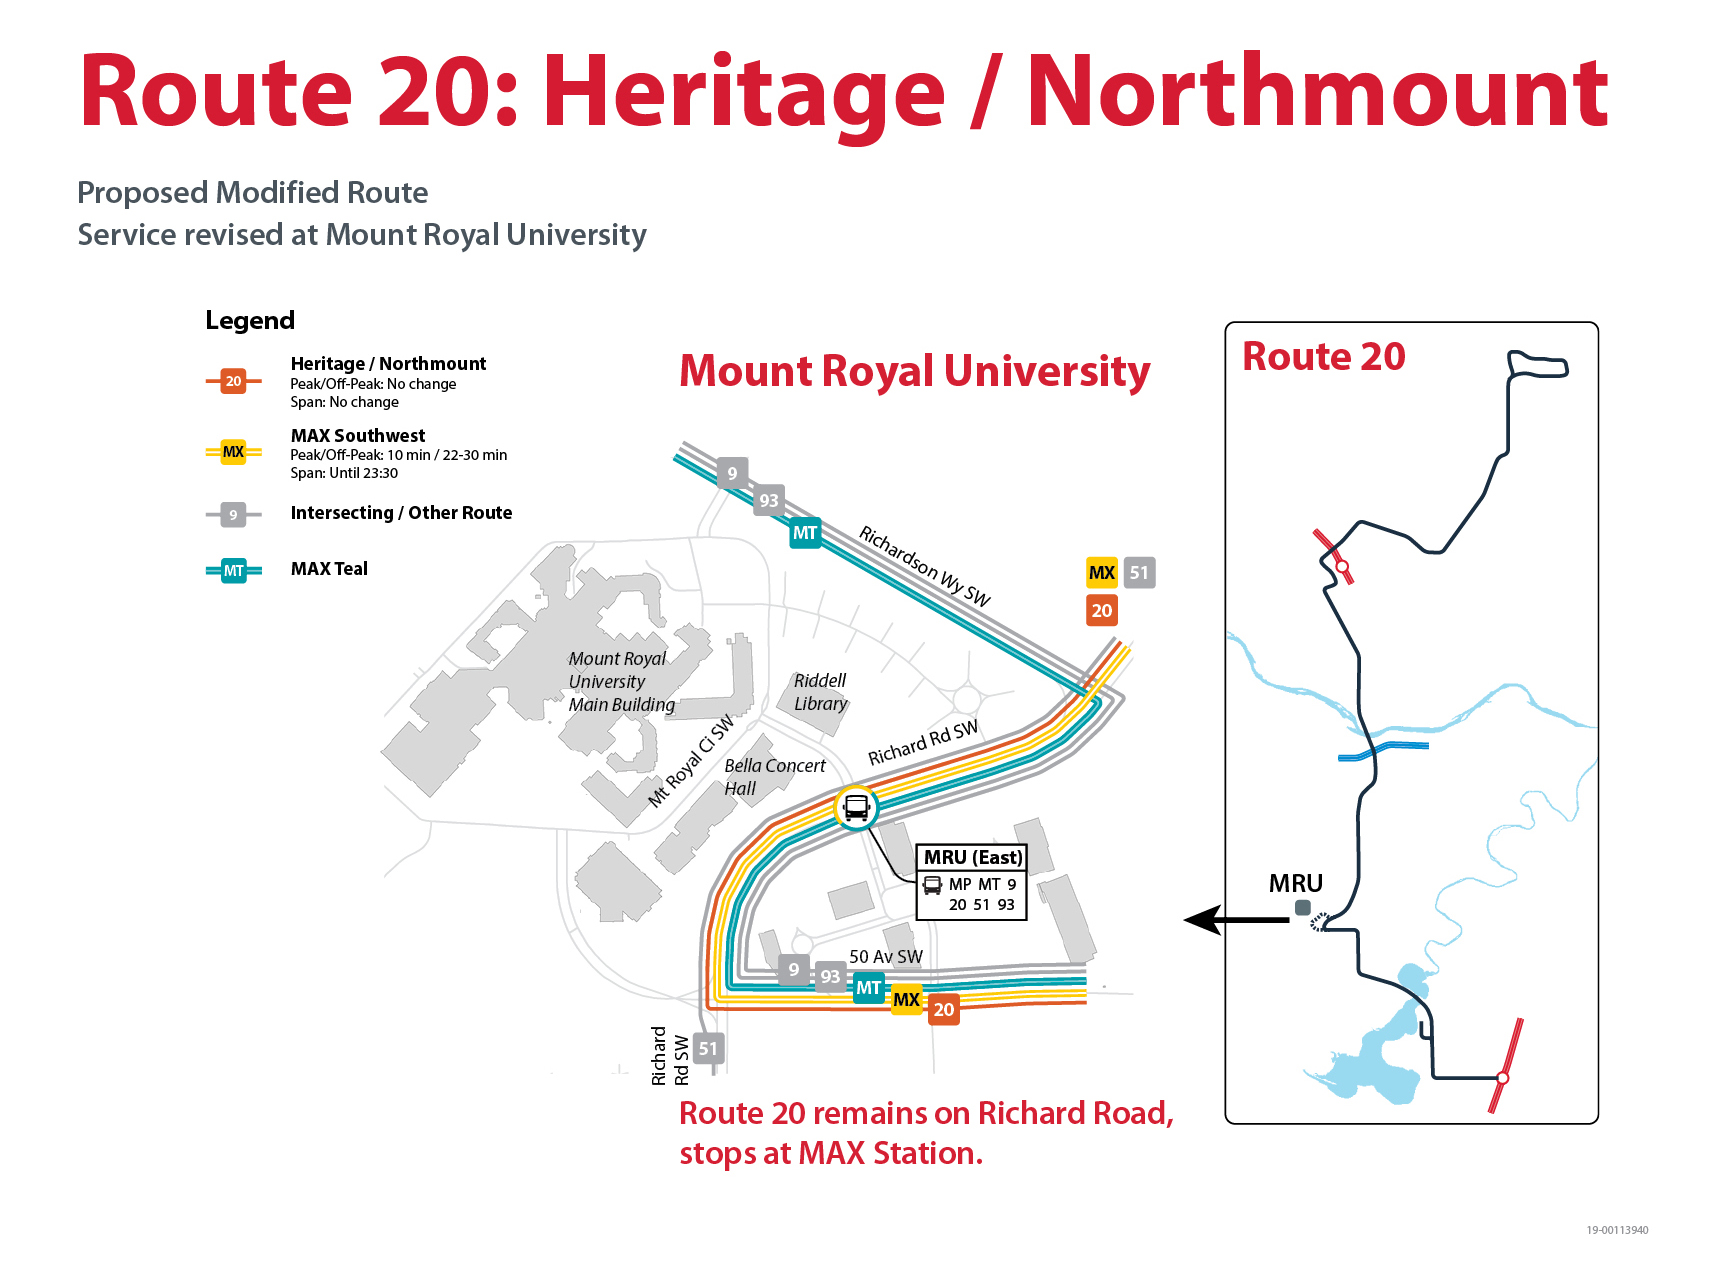 Proposed Changes to Route 20